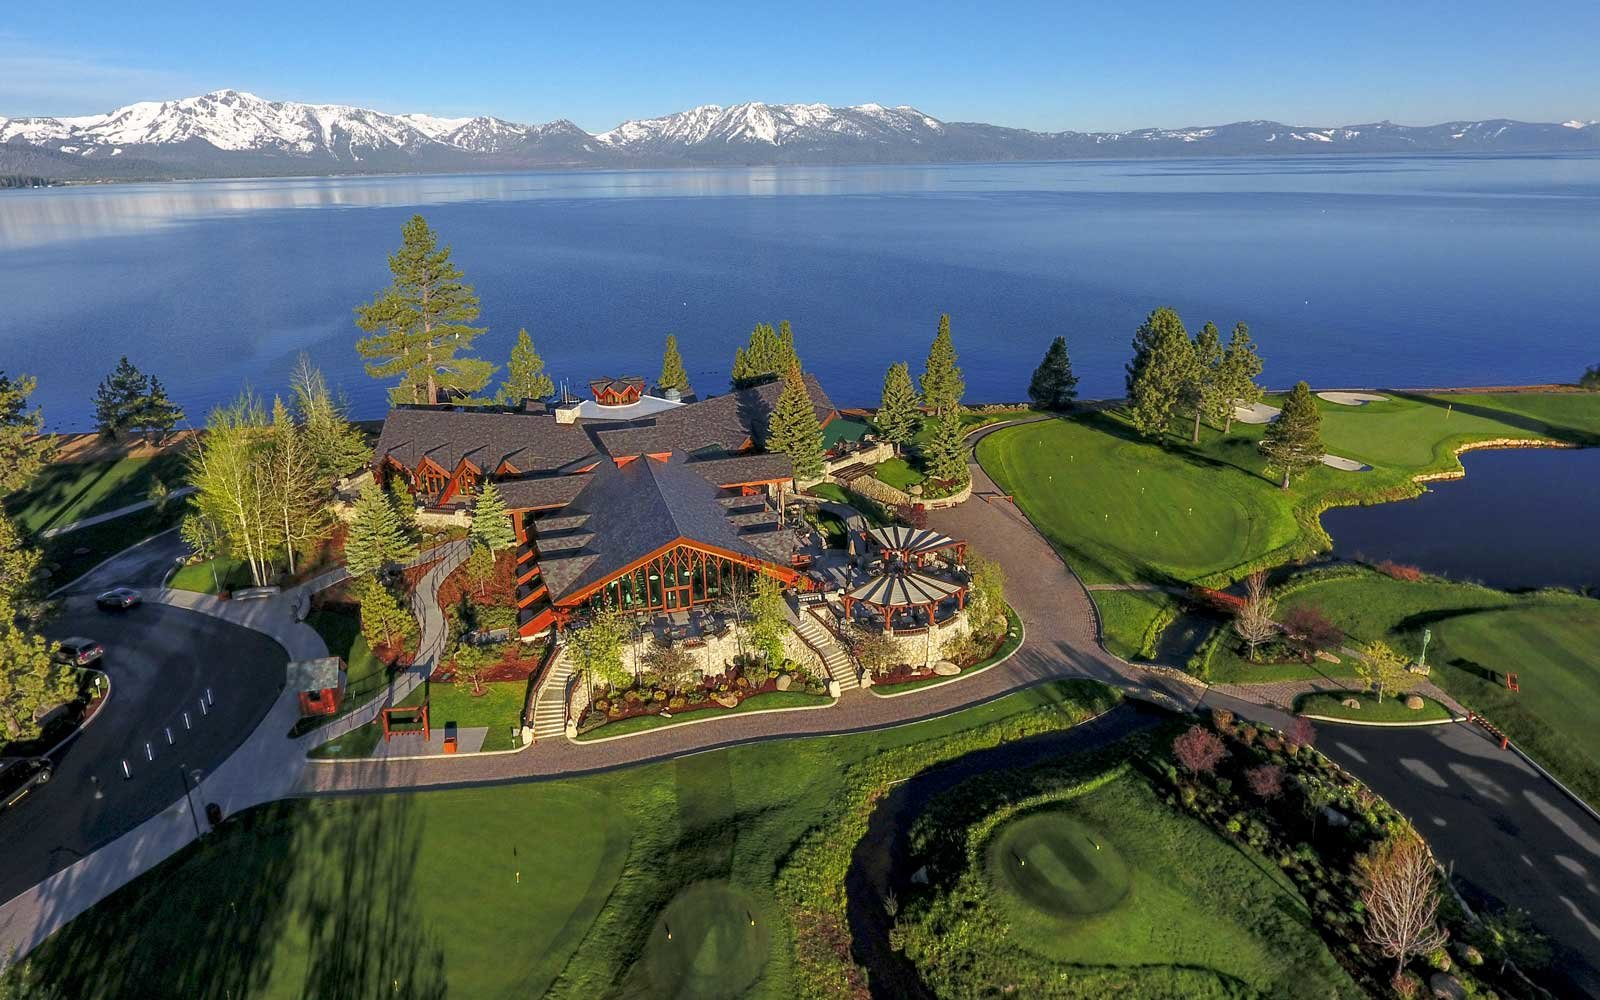 Aerial view of The Lodge at Edgewood, Lake Tahoe